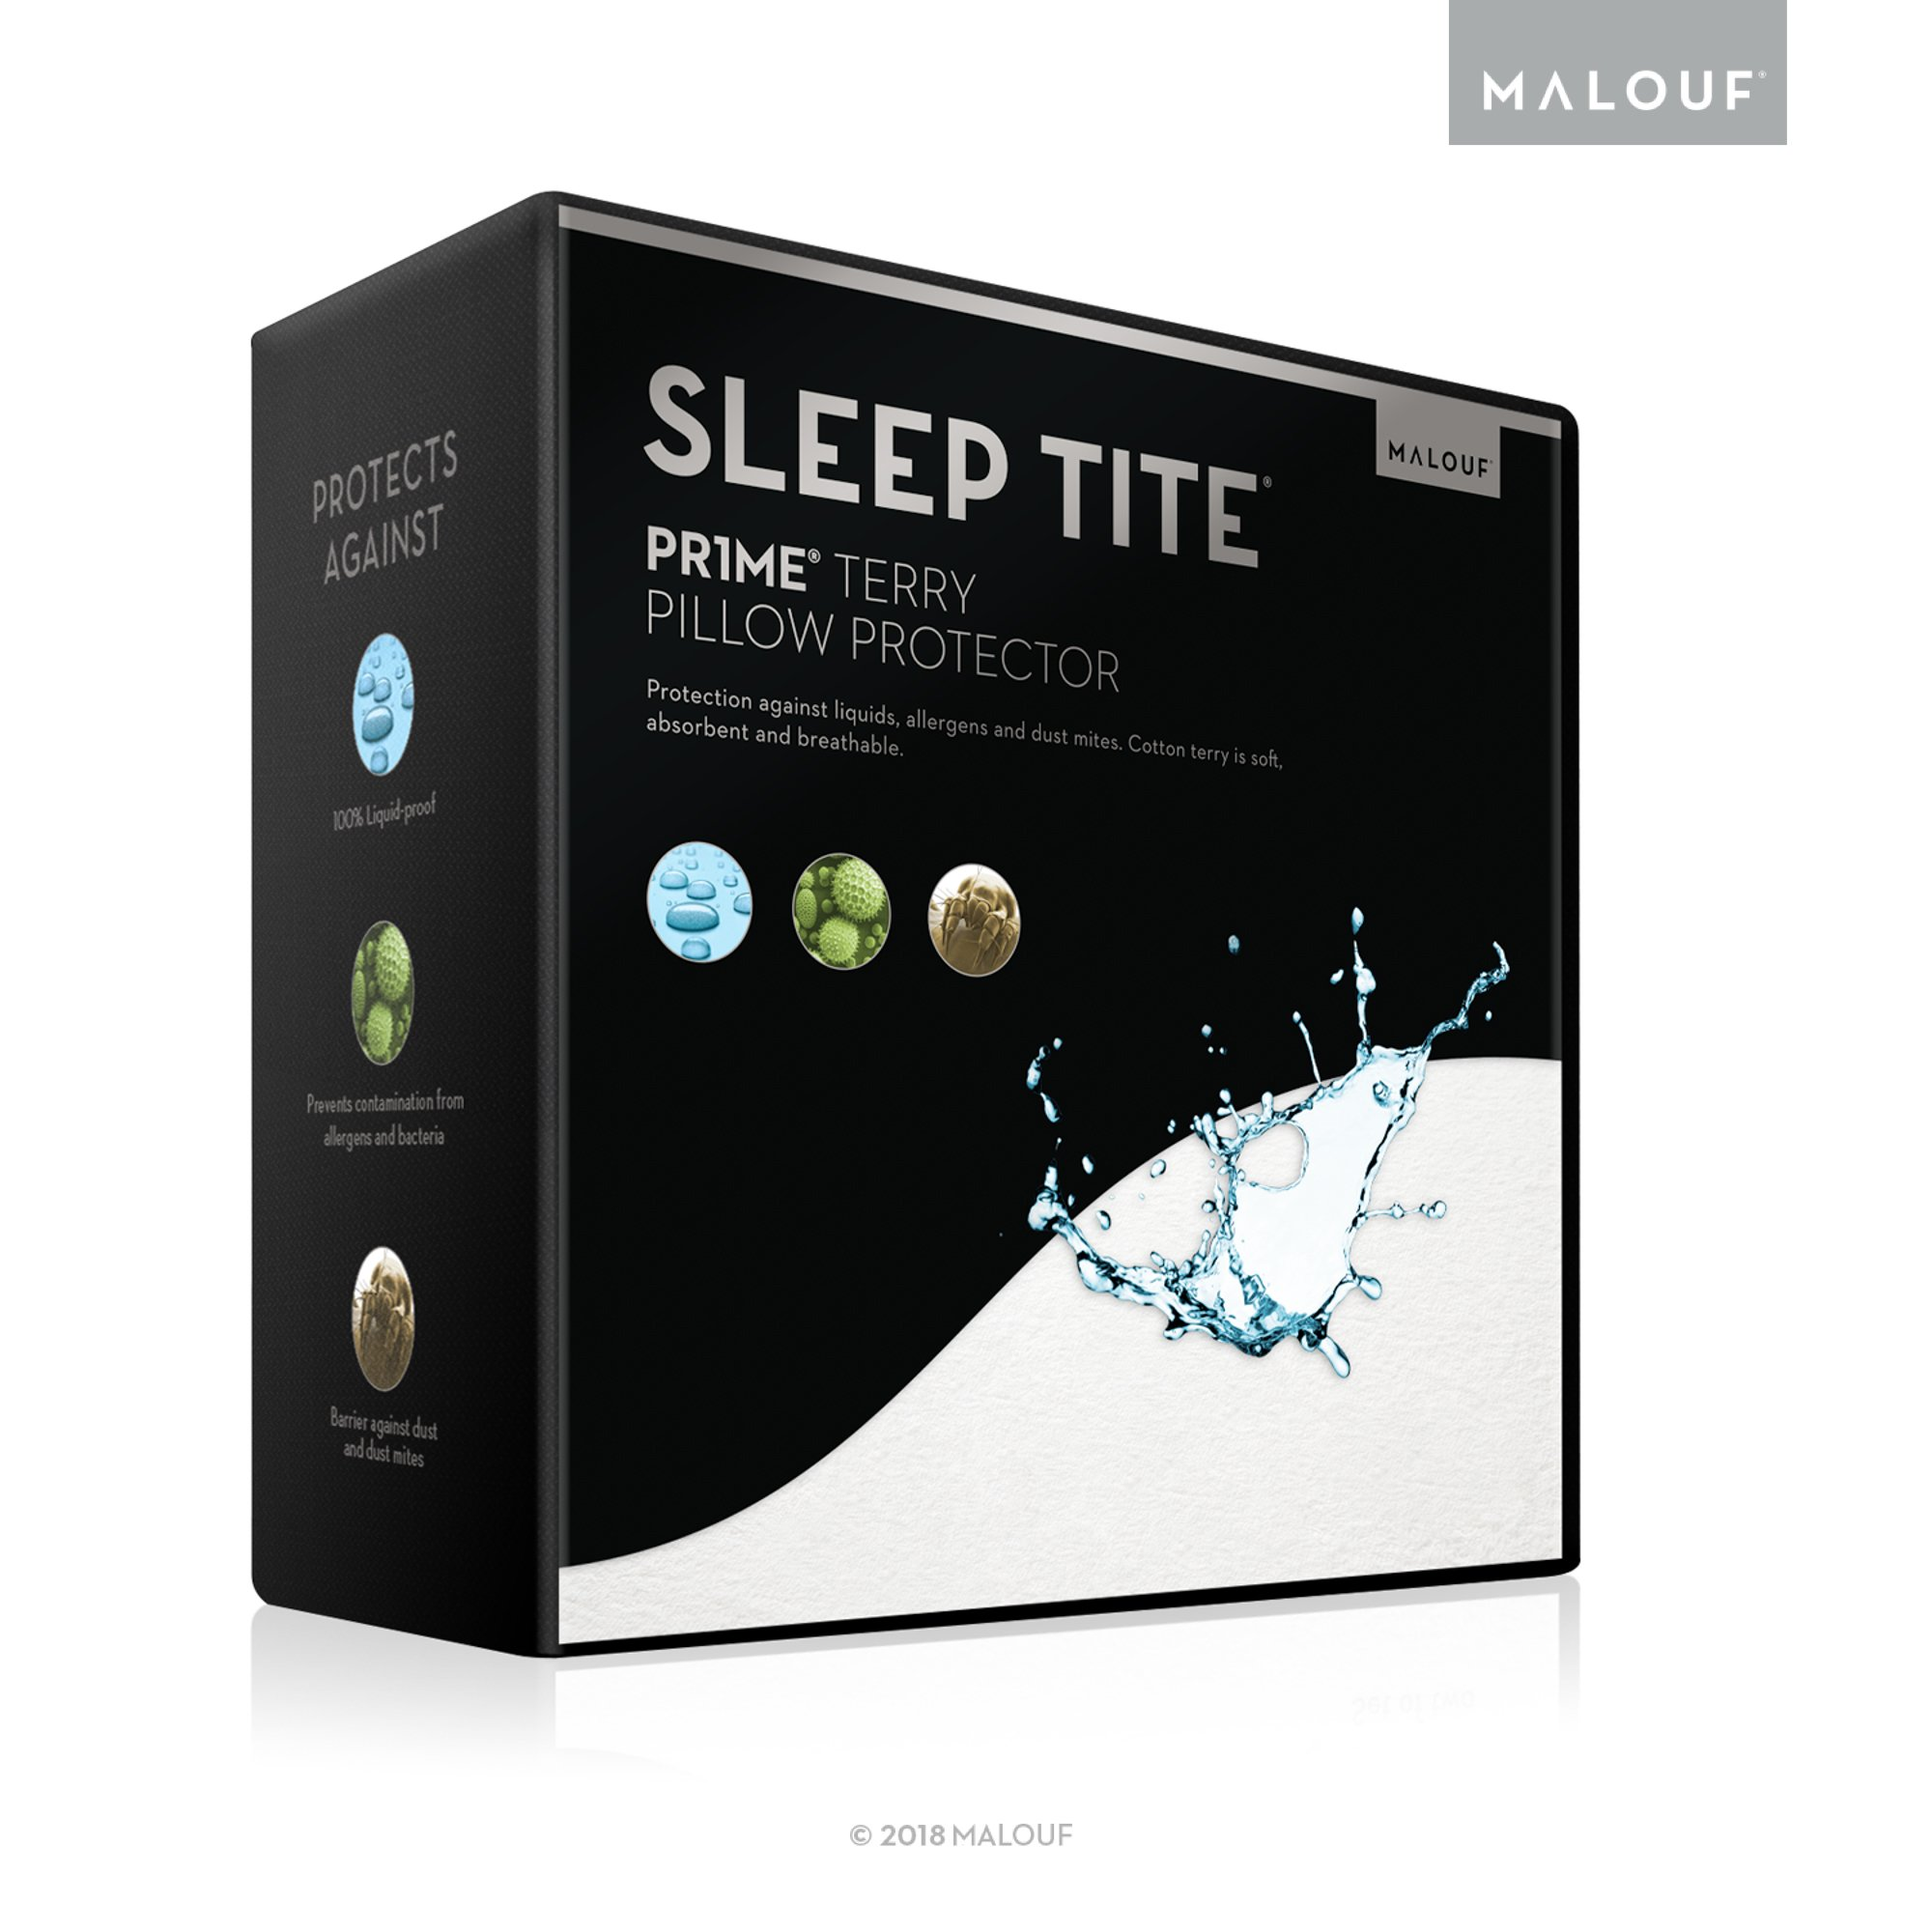 Sleep Tite Hypoallergenic 100% Waterproof Pillow Protector- 15-Year Warranty - Set of 2 - Standard by MALOUF (Image #1)